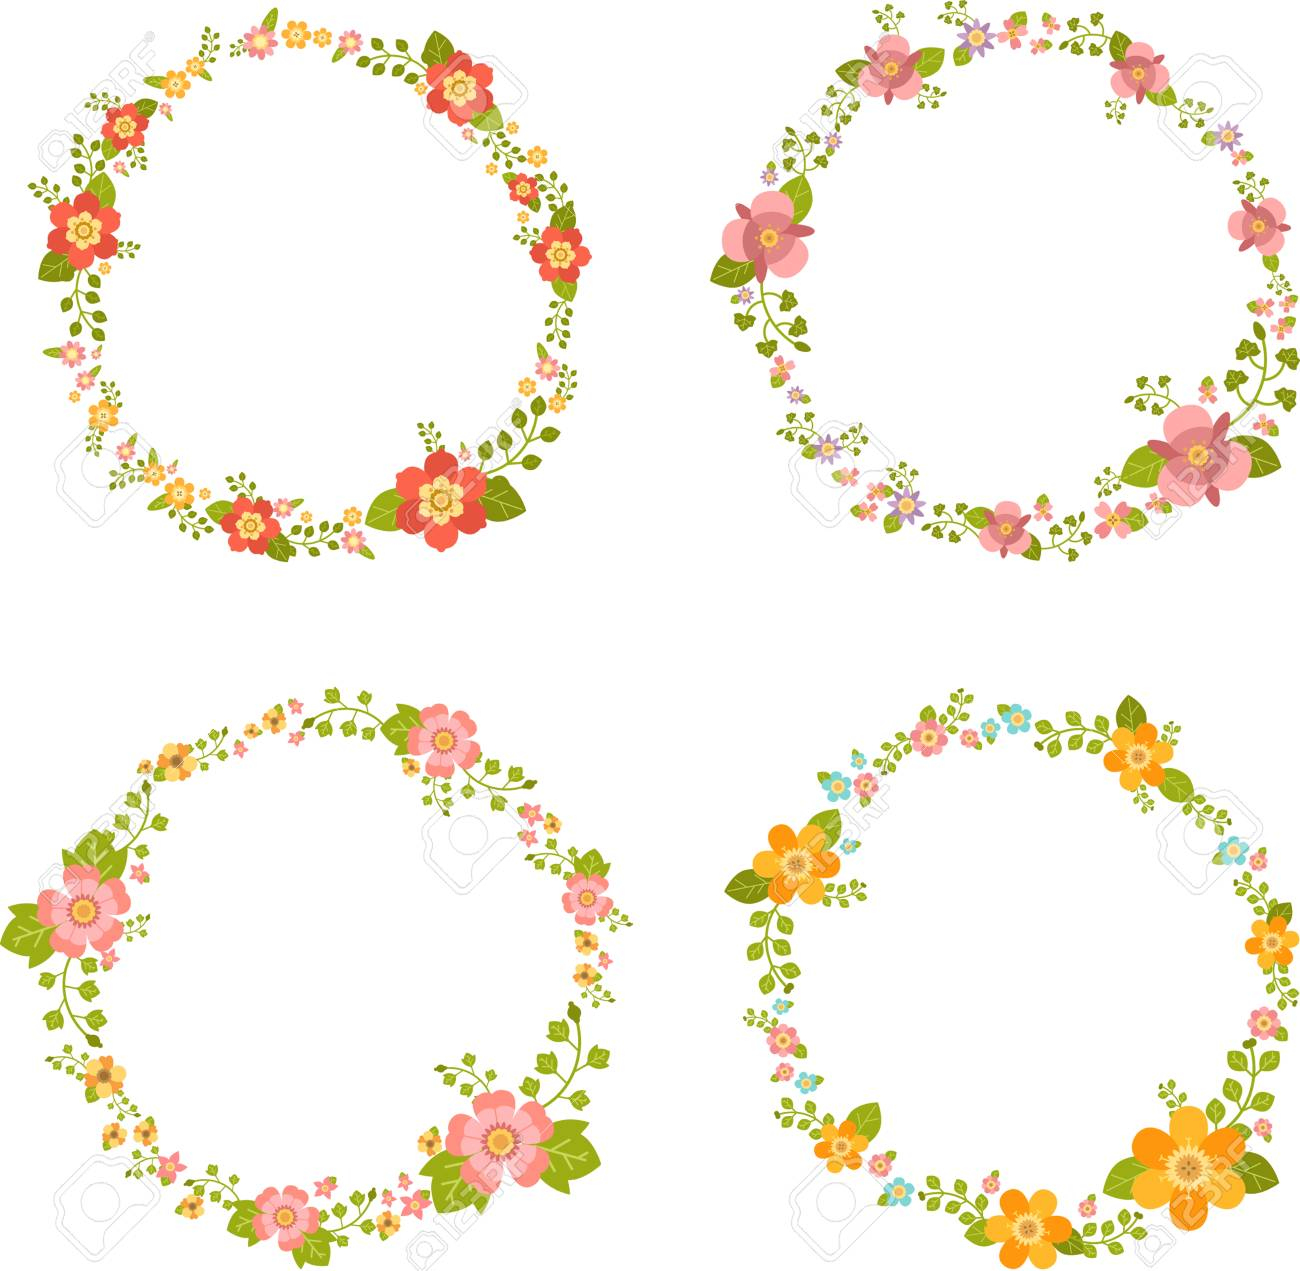 blank flower circle template design royalty free cliparts vectors